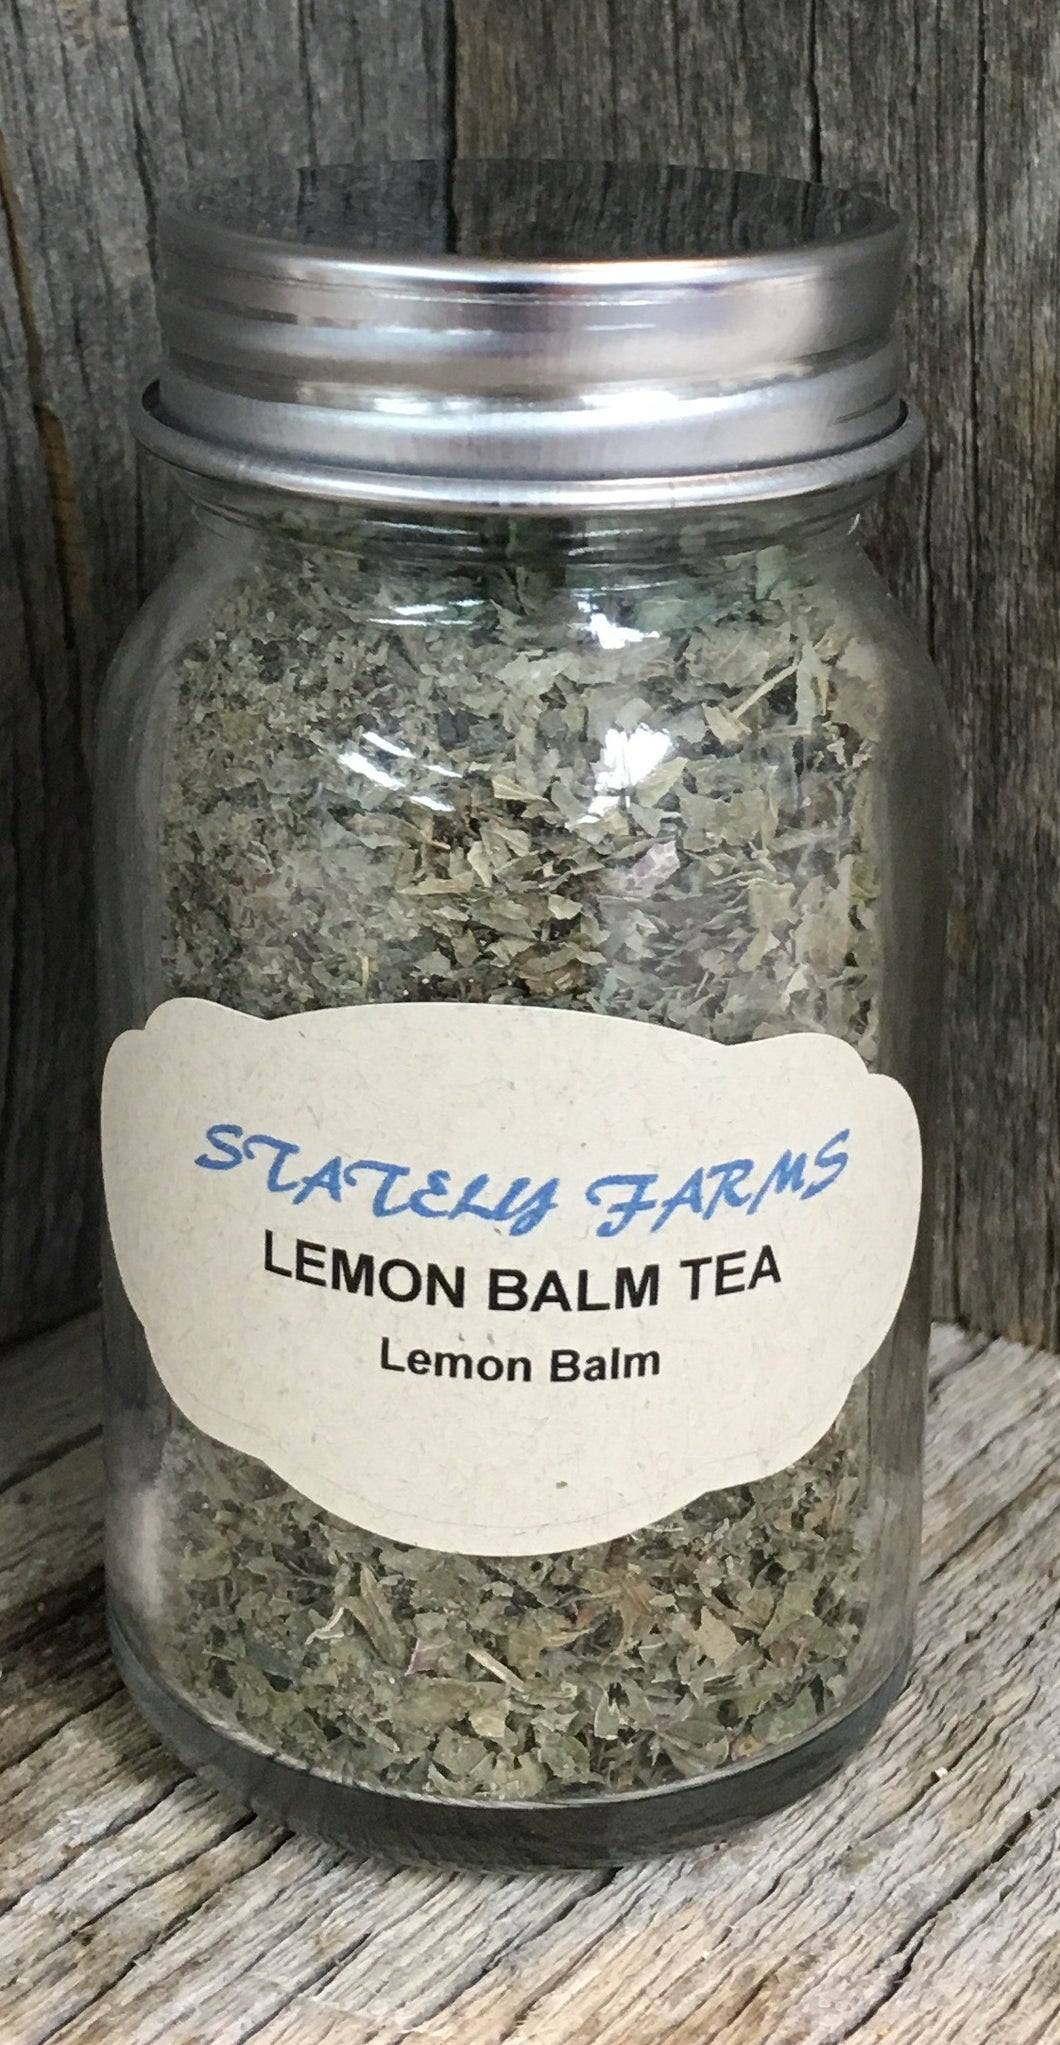 Lemon Balm Tea